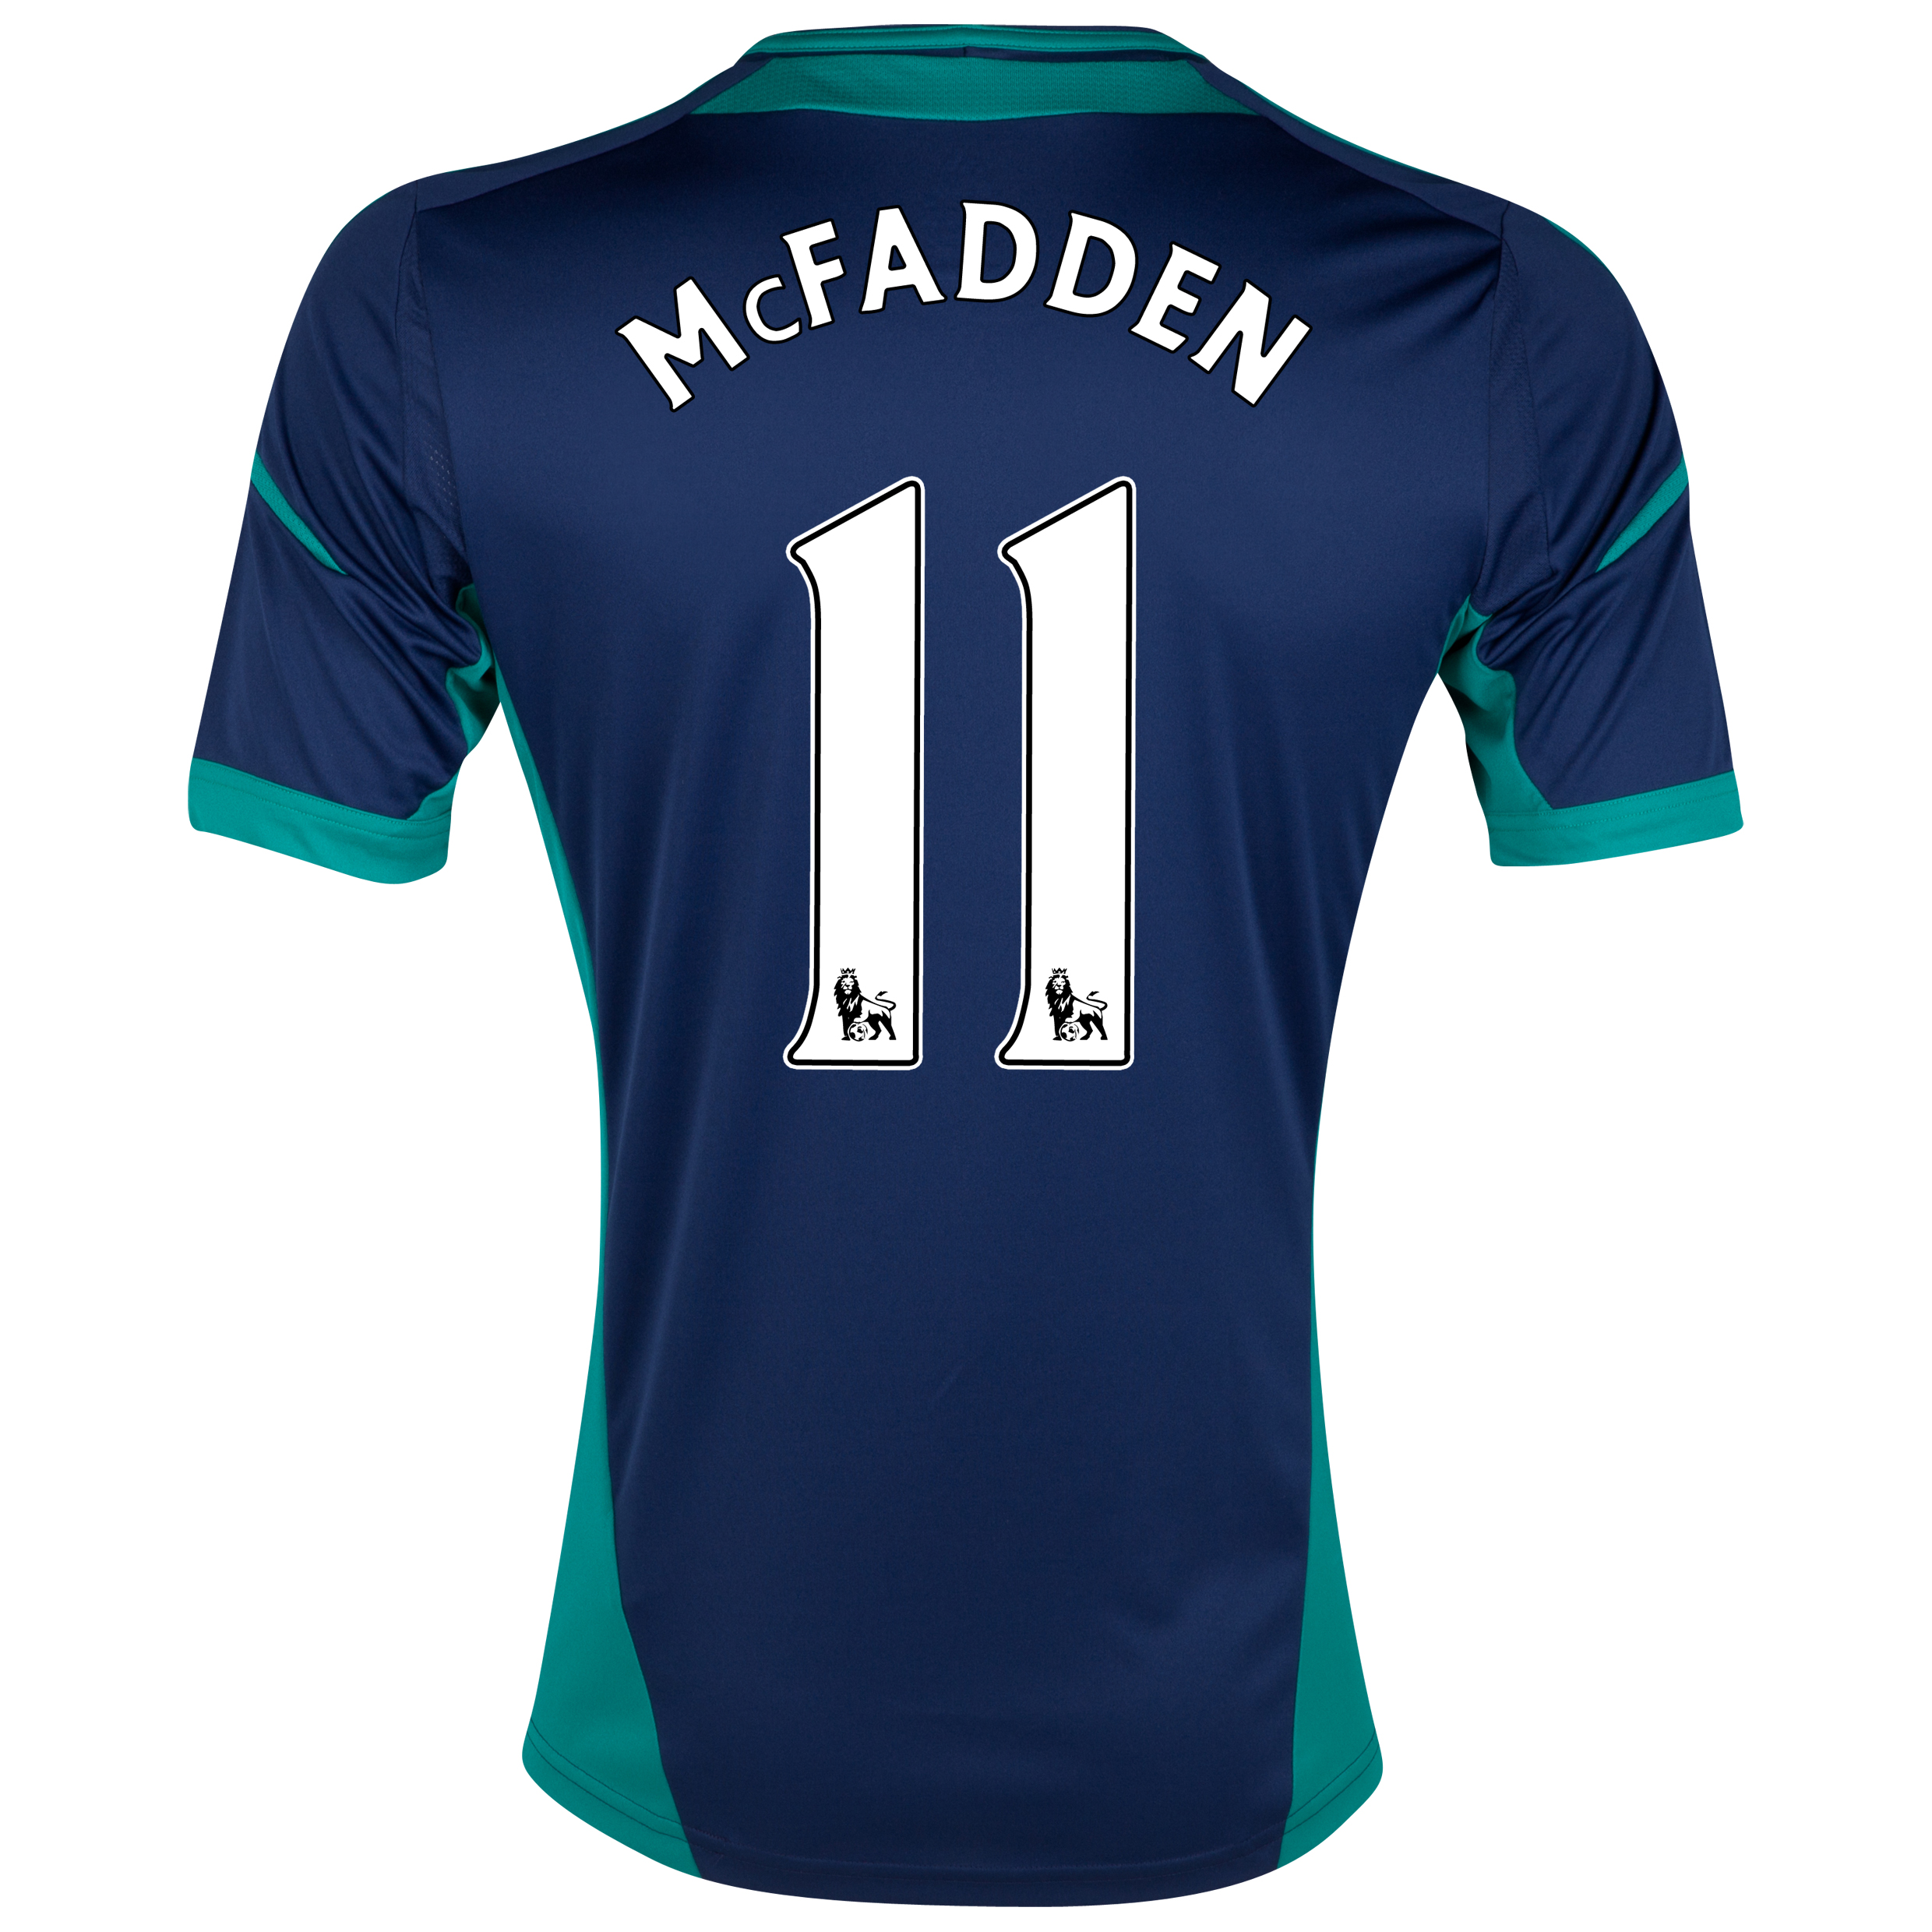 Sunderland Away Shirt 2012/13 with McFadden 11 printing